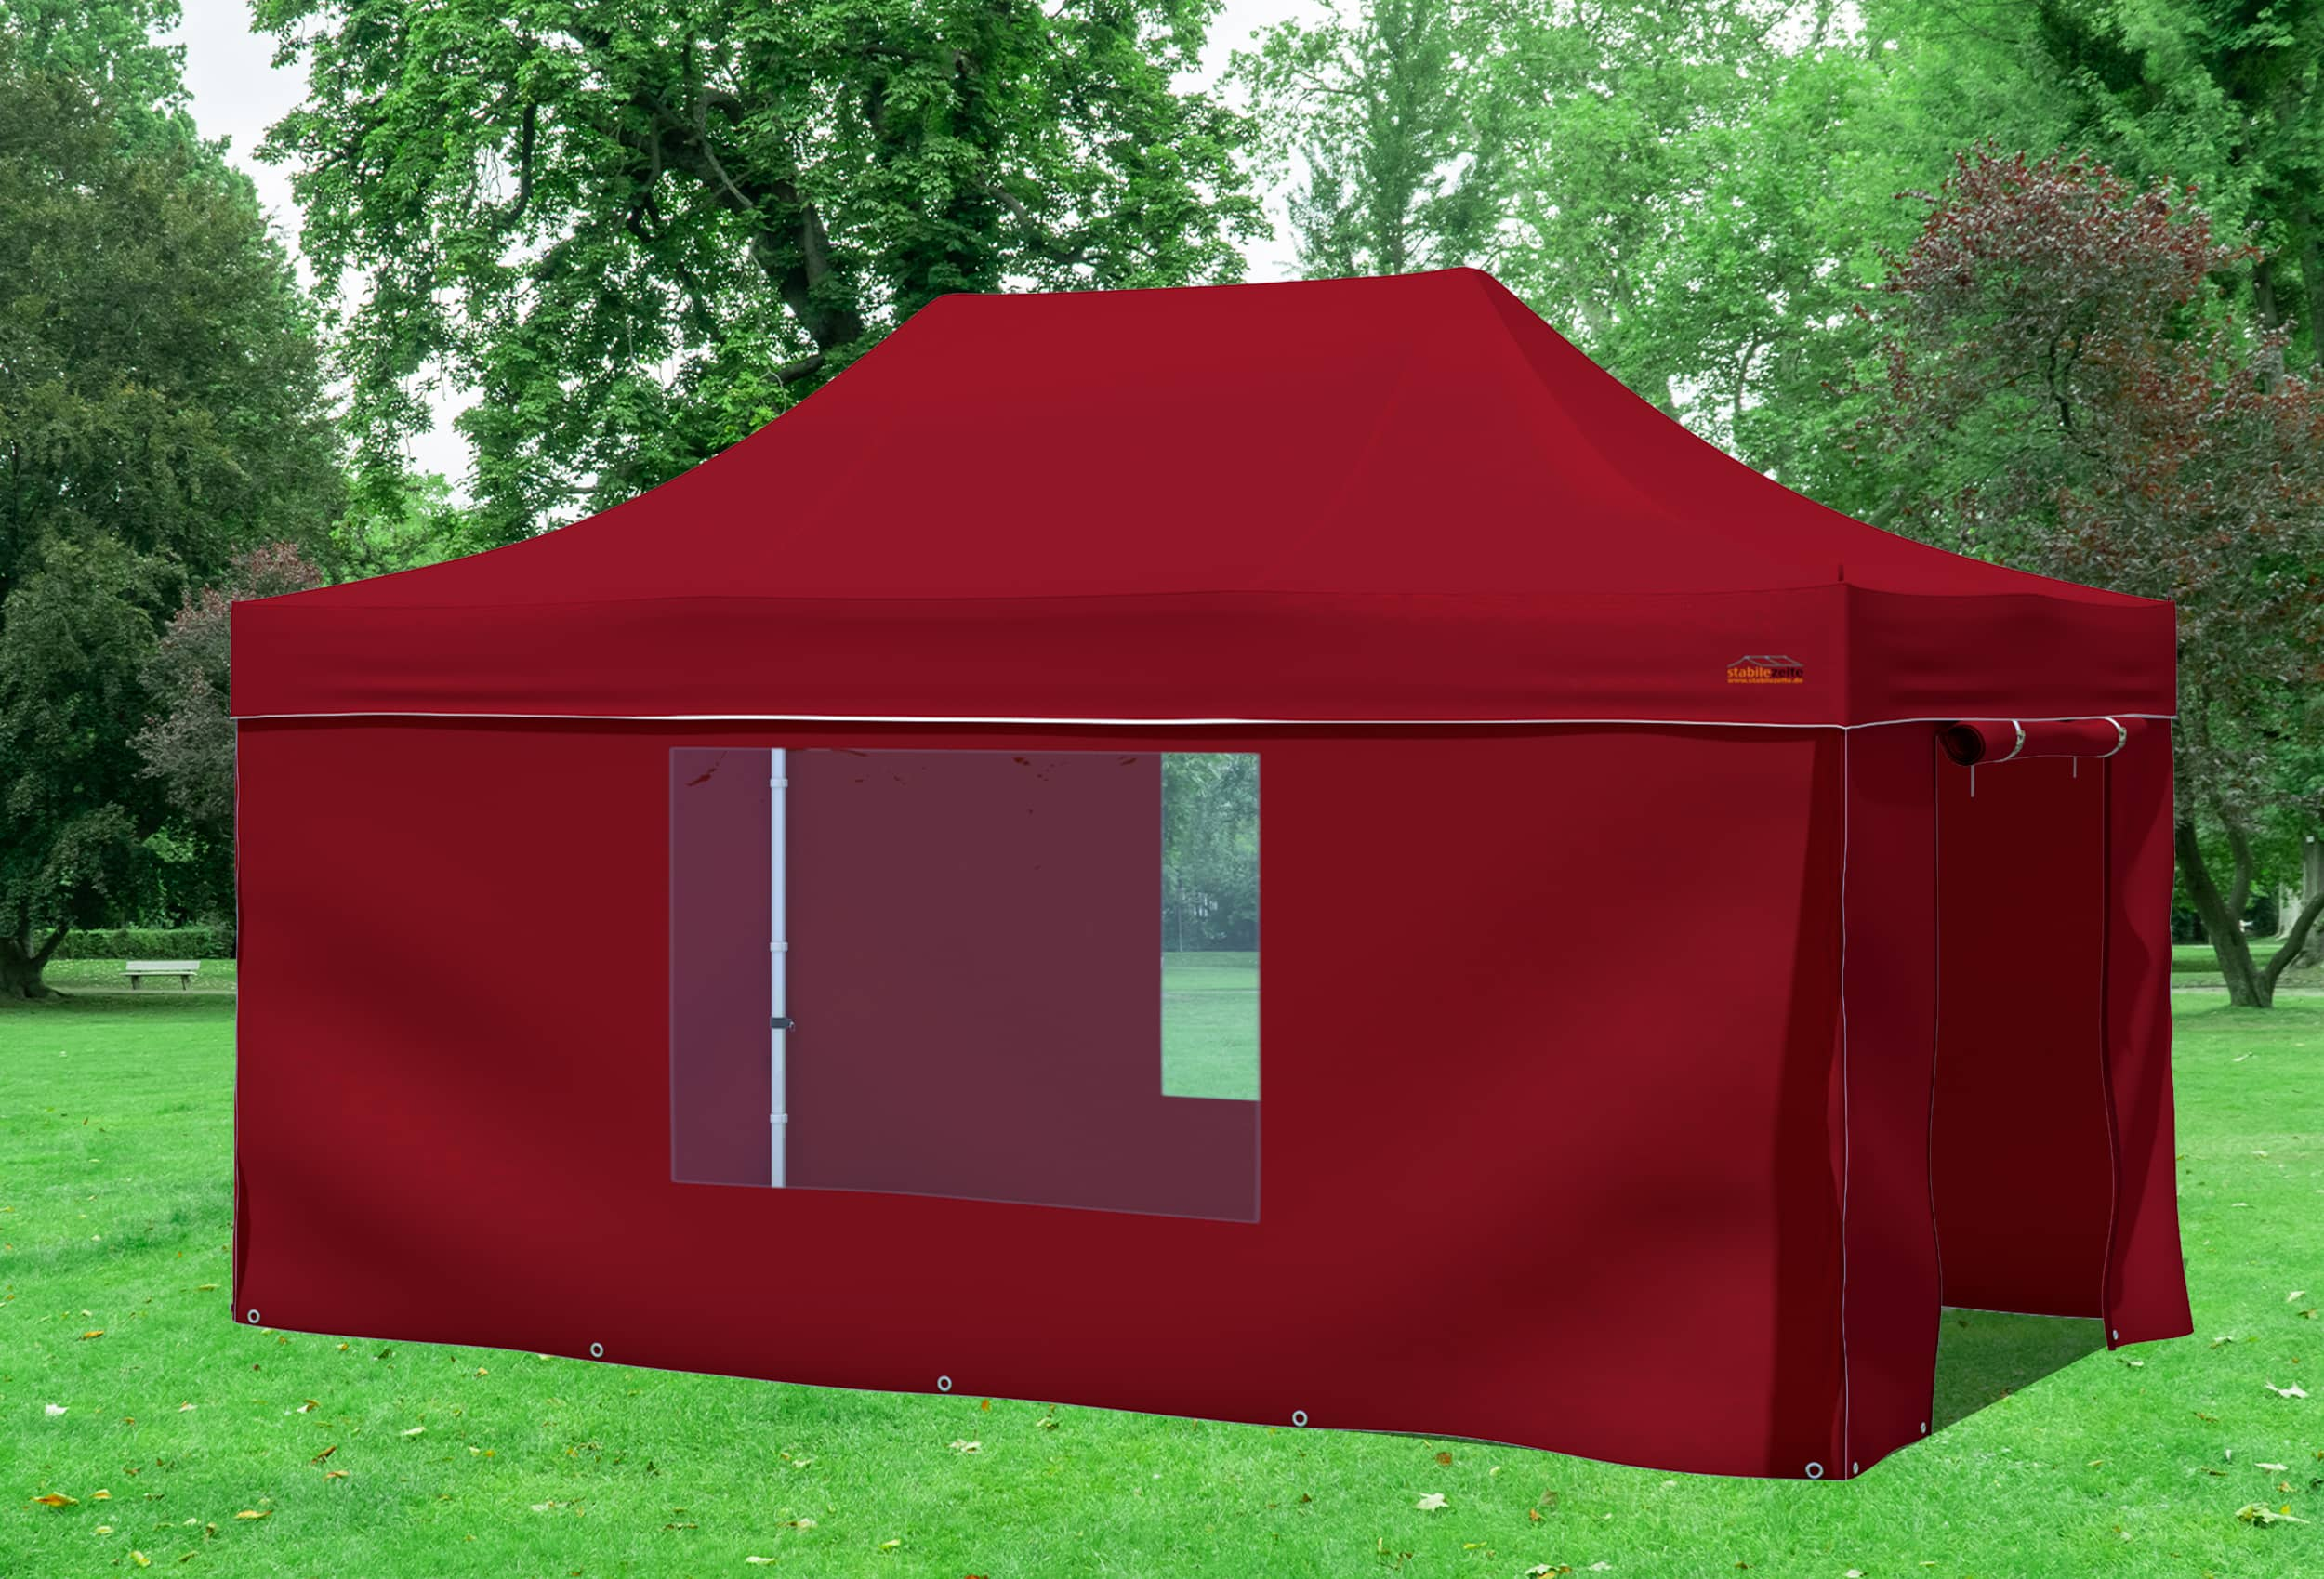 3x4 5 m faltpavillon bordeaux professional serie faltpavillons. Black Bedroom Furniture Sets. Home Design Ideas